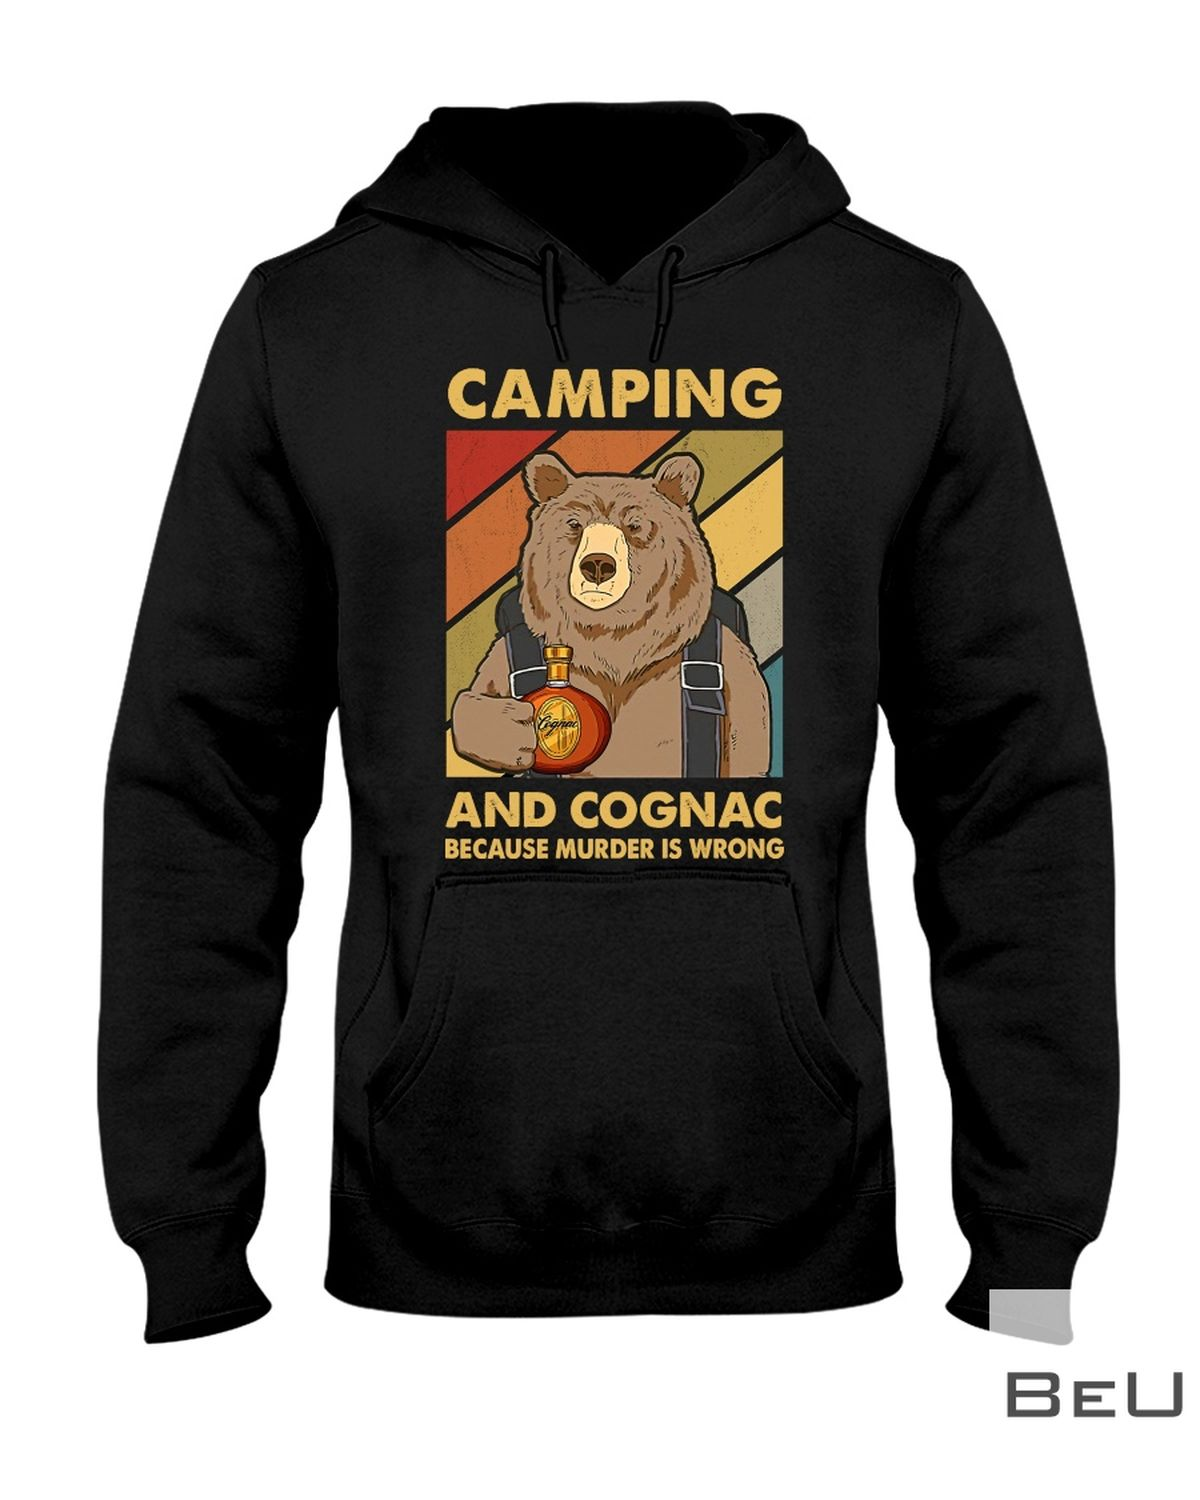 Camping And Cognac Because Murder Is Wrong Shirtx